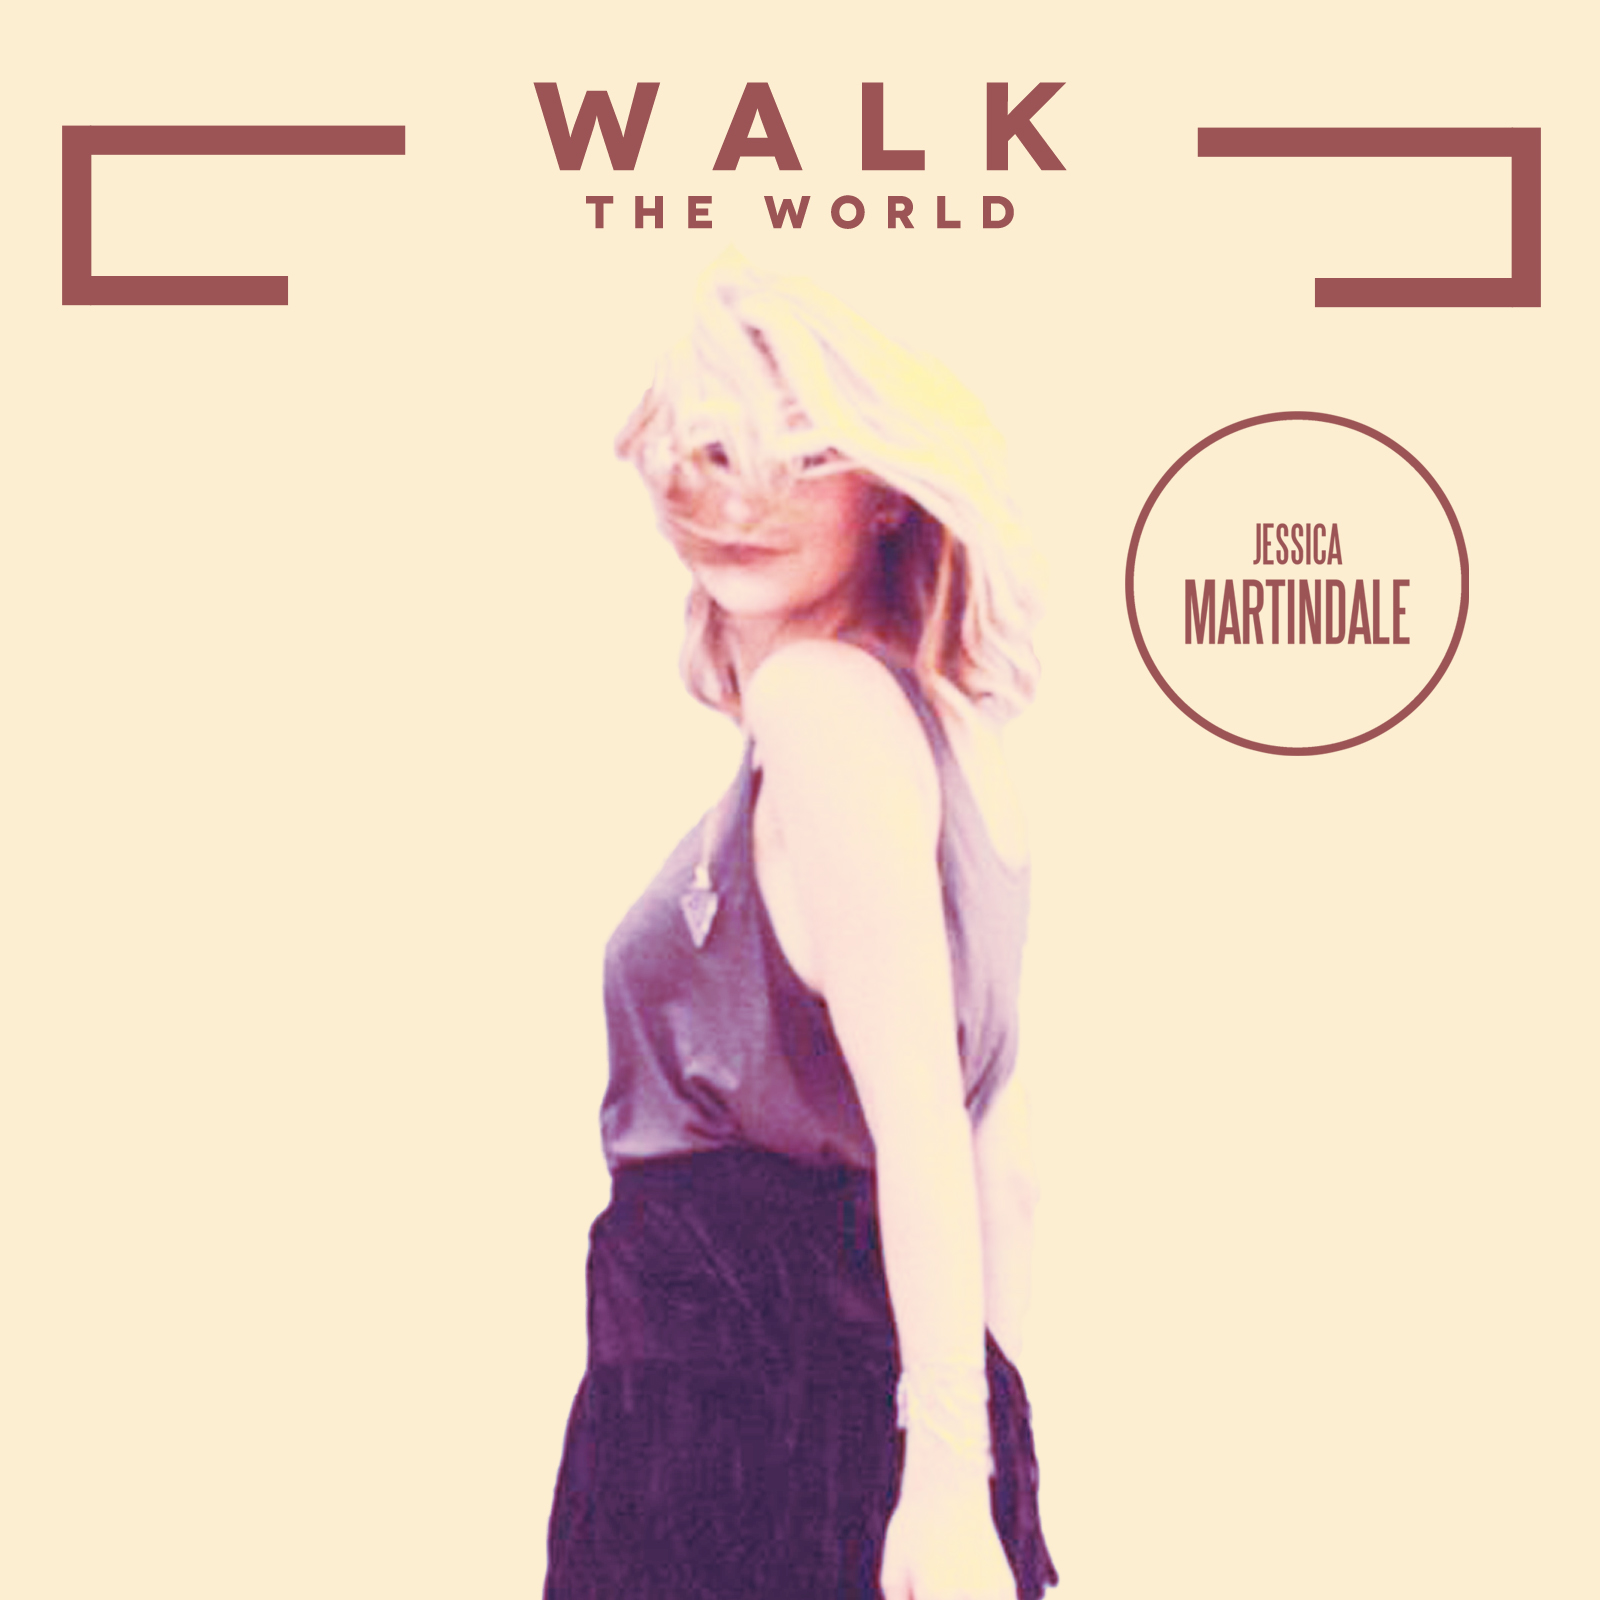 walk the world cover 2.jpg